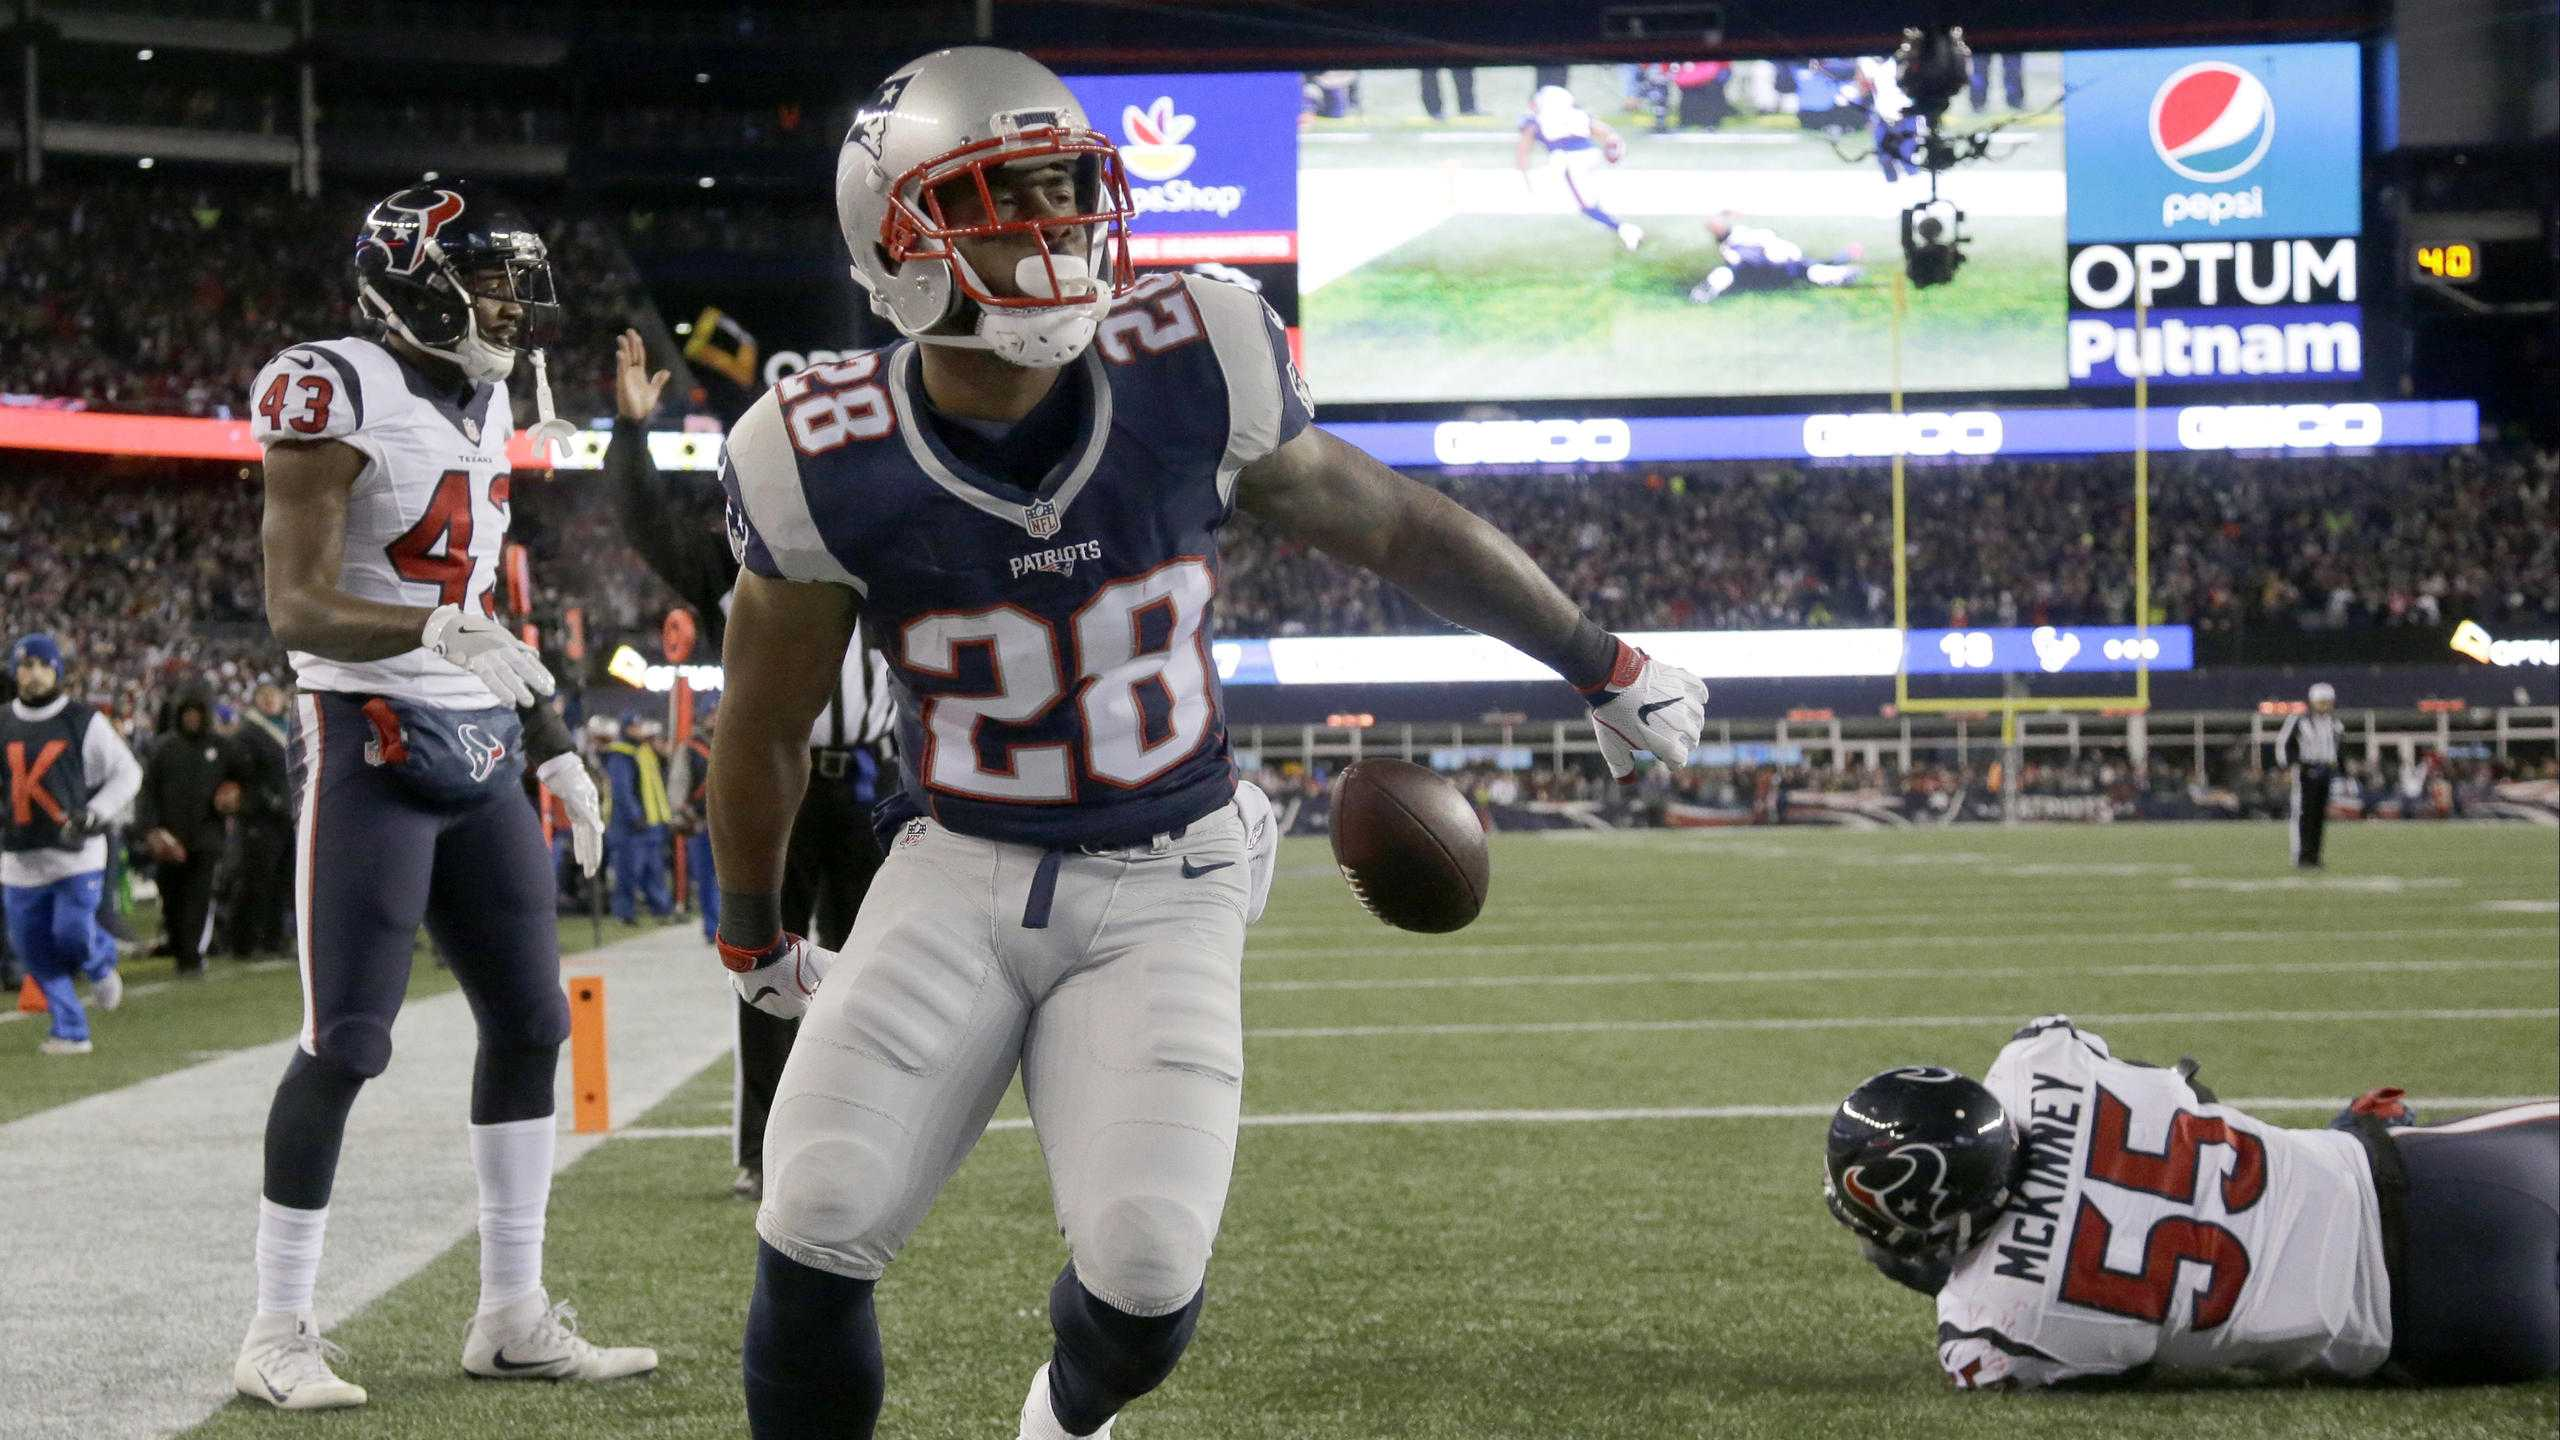 ​New England Patriots running back James White (28) celebrates after scoring a touchdown against the Houston Texans during the second half of an NFL divisional playoff football game, Saturday, Jan. 14, 2017, in Foxborough, Mass.